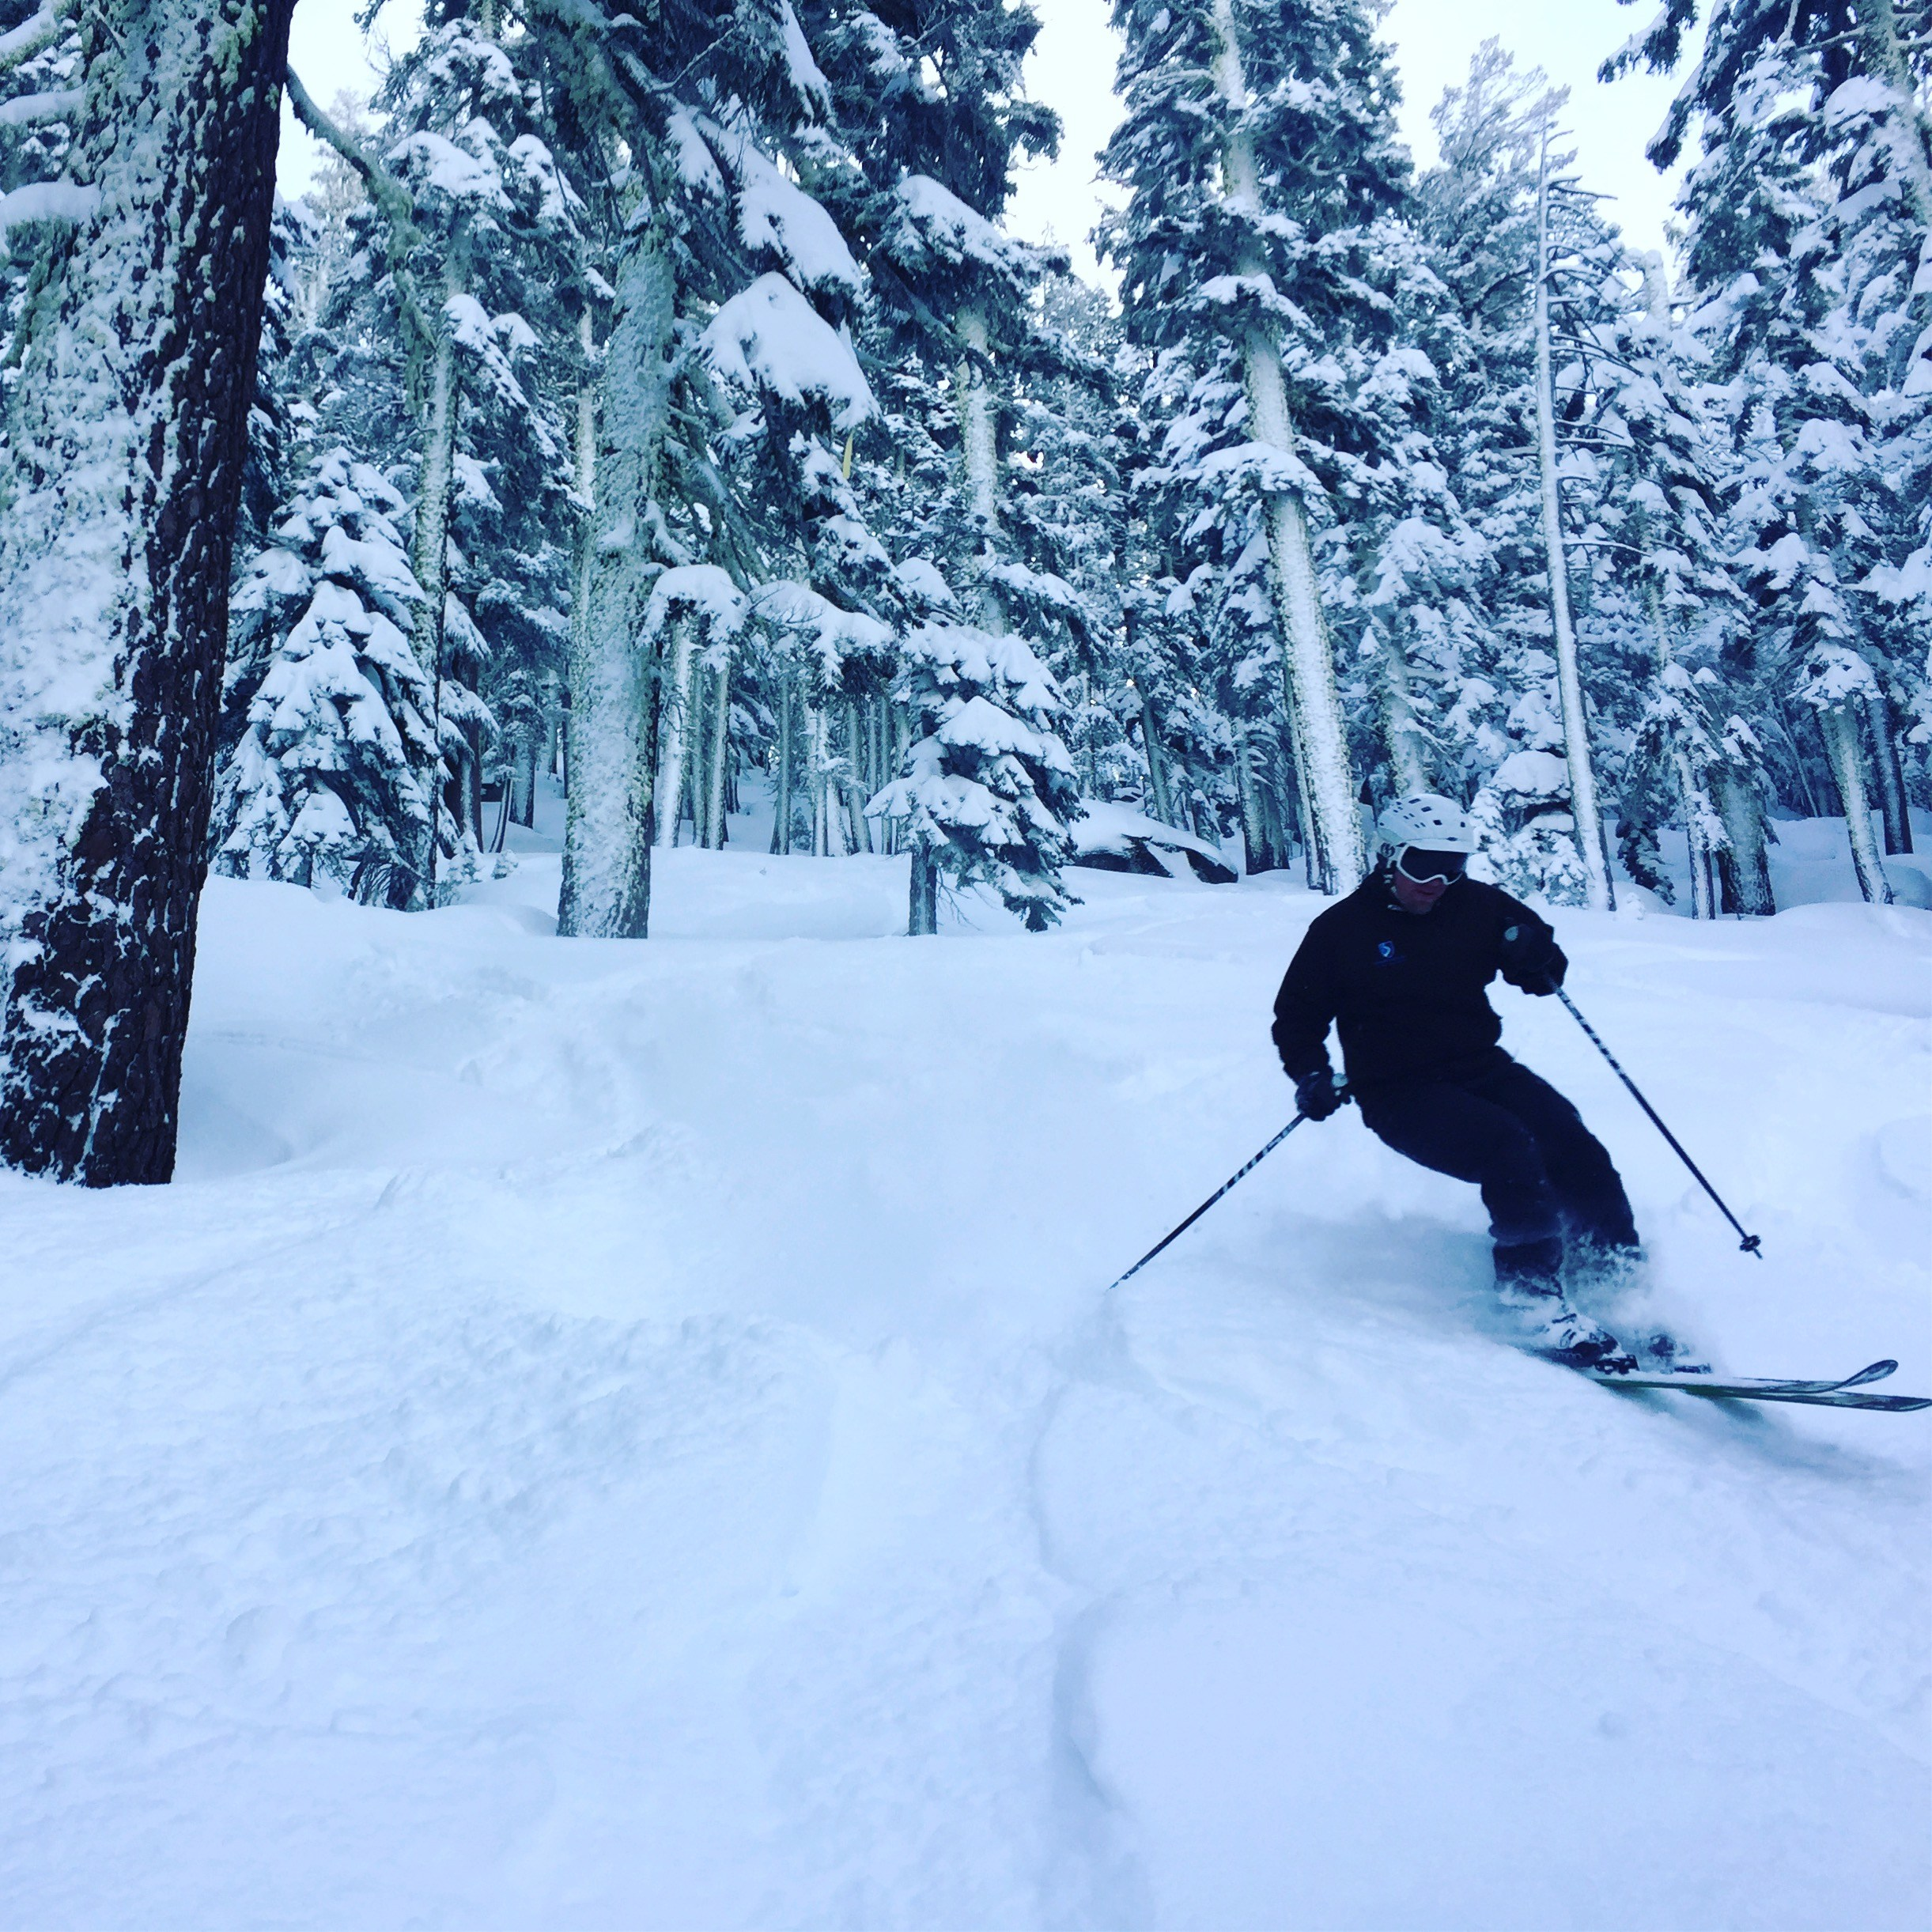 Sierra at Tahoe powder tree skiing